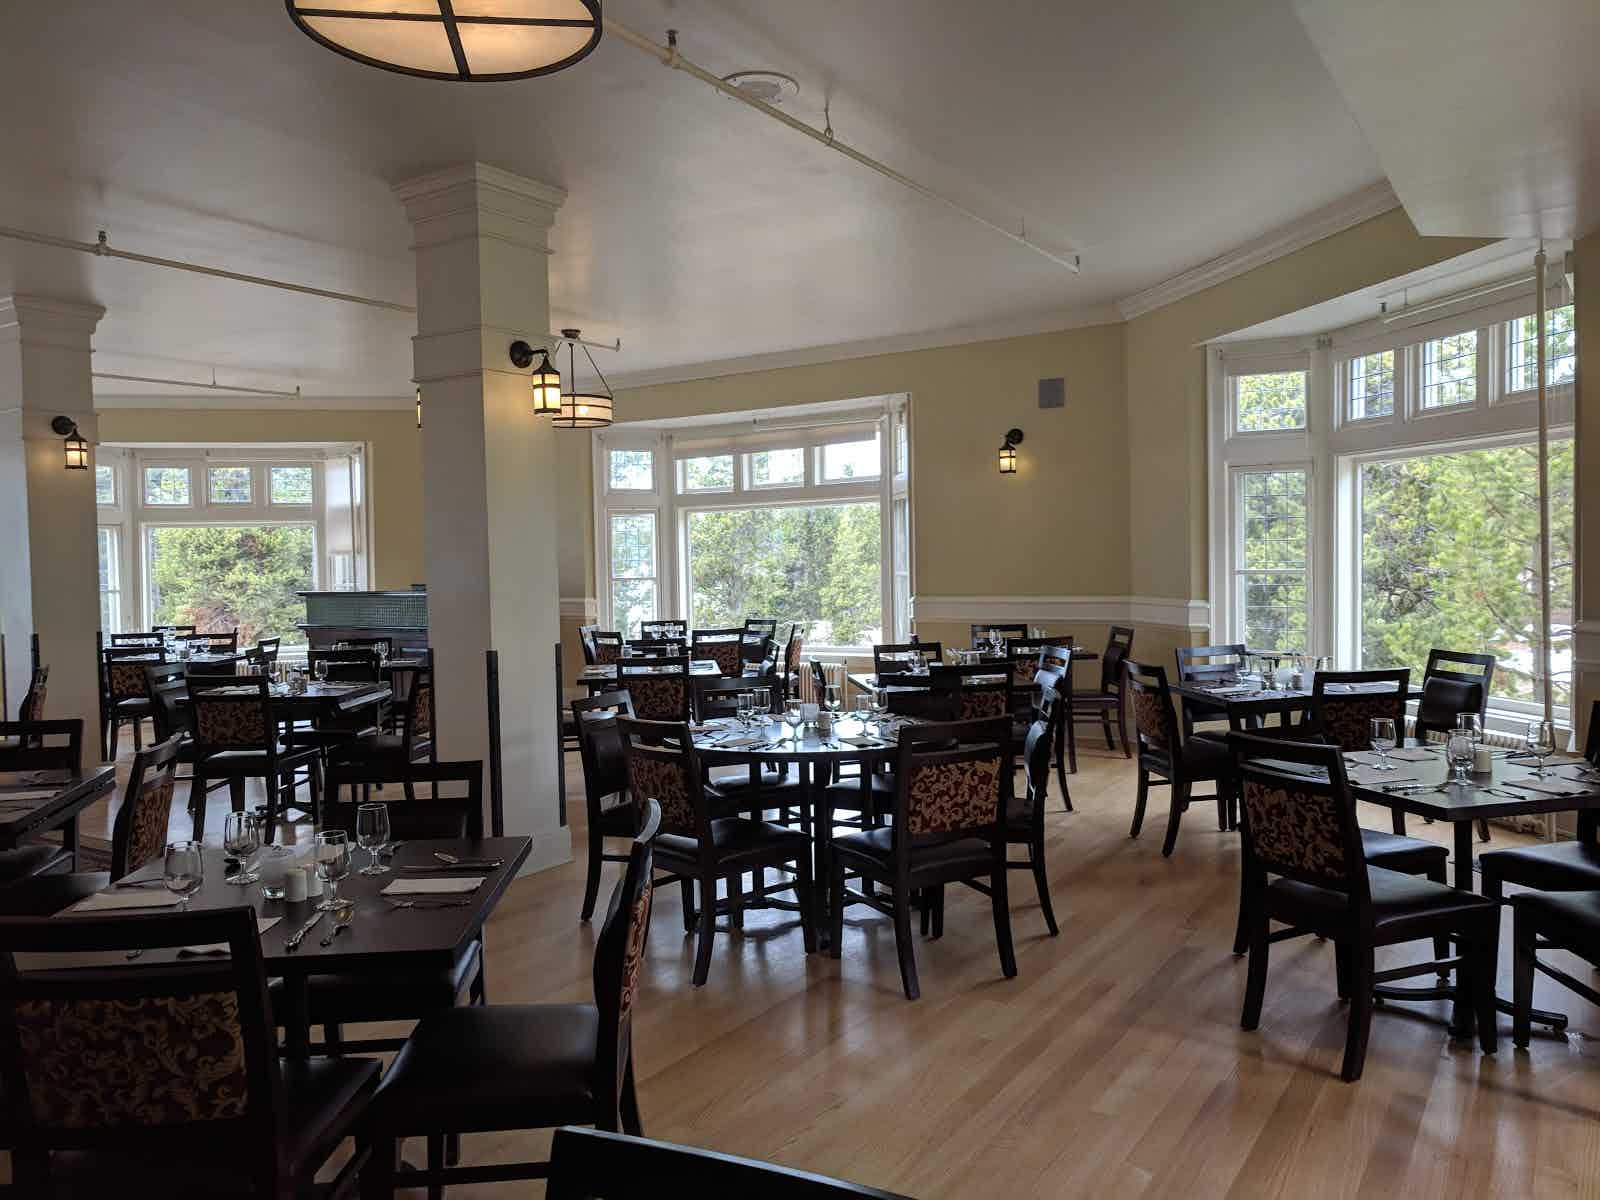 Lake Yellowstone Hotel Dining Room   Yellowstone National Park | Restaurant  Review   Zagat